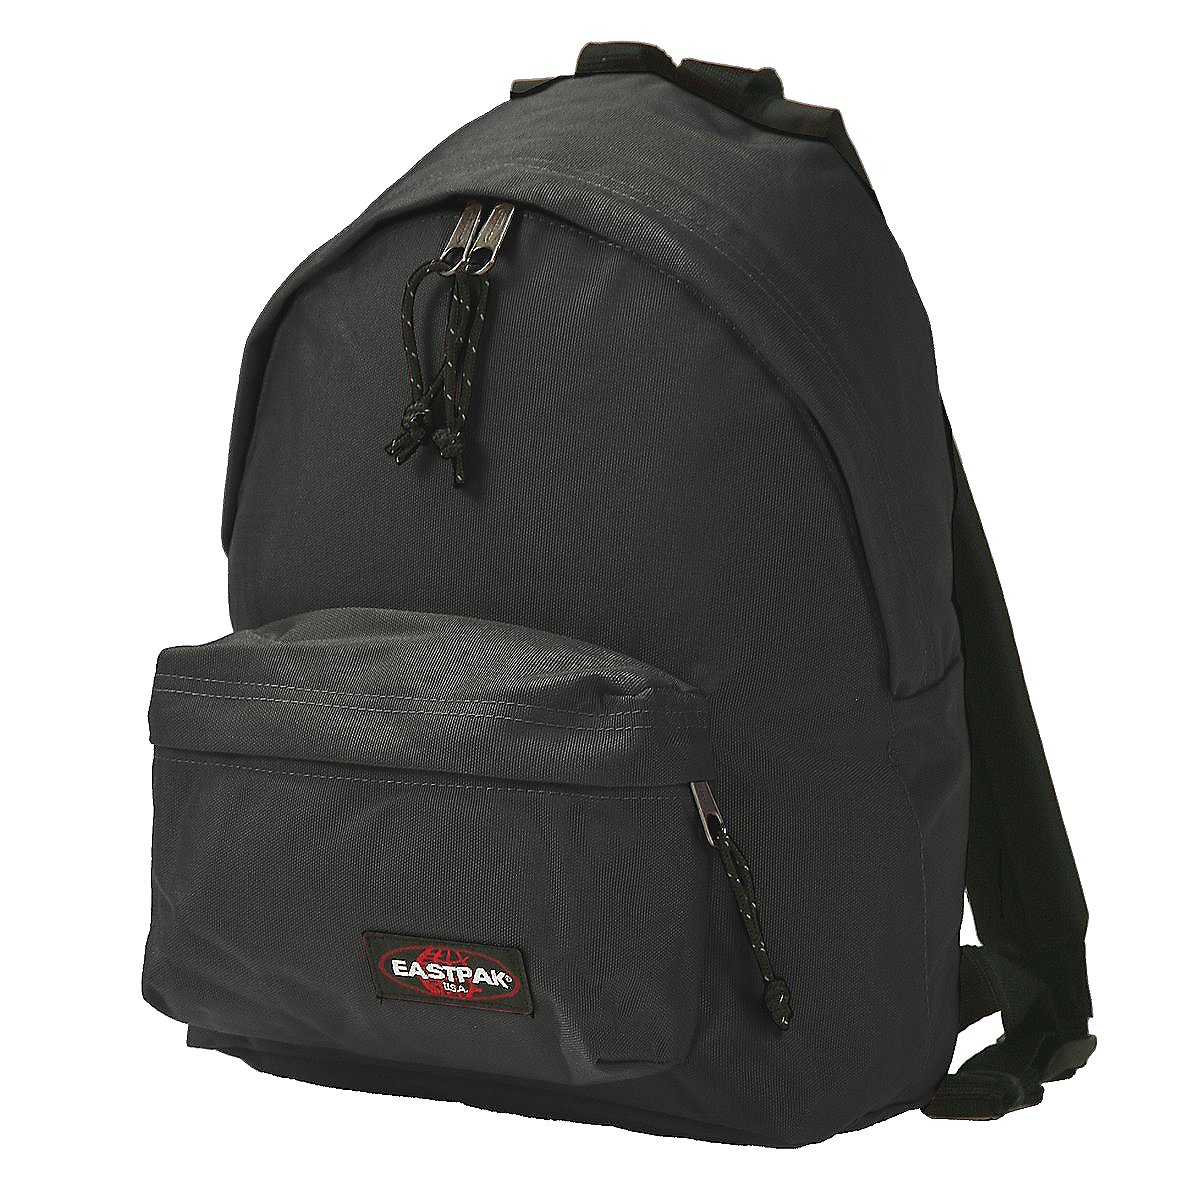 Eastpak Authentic Orbit Freizeitrucksack 33 cm